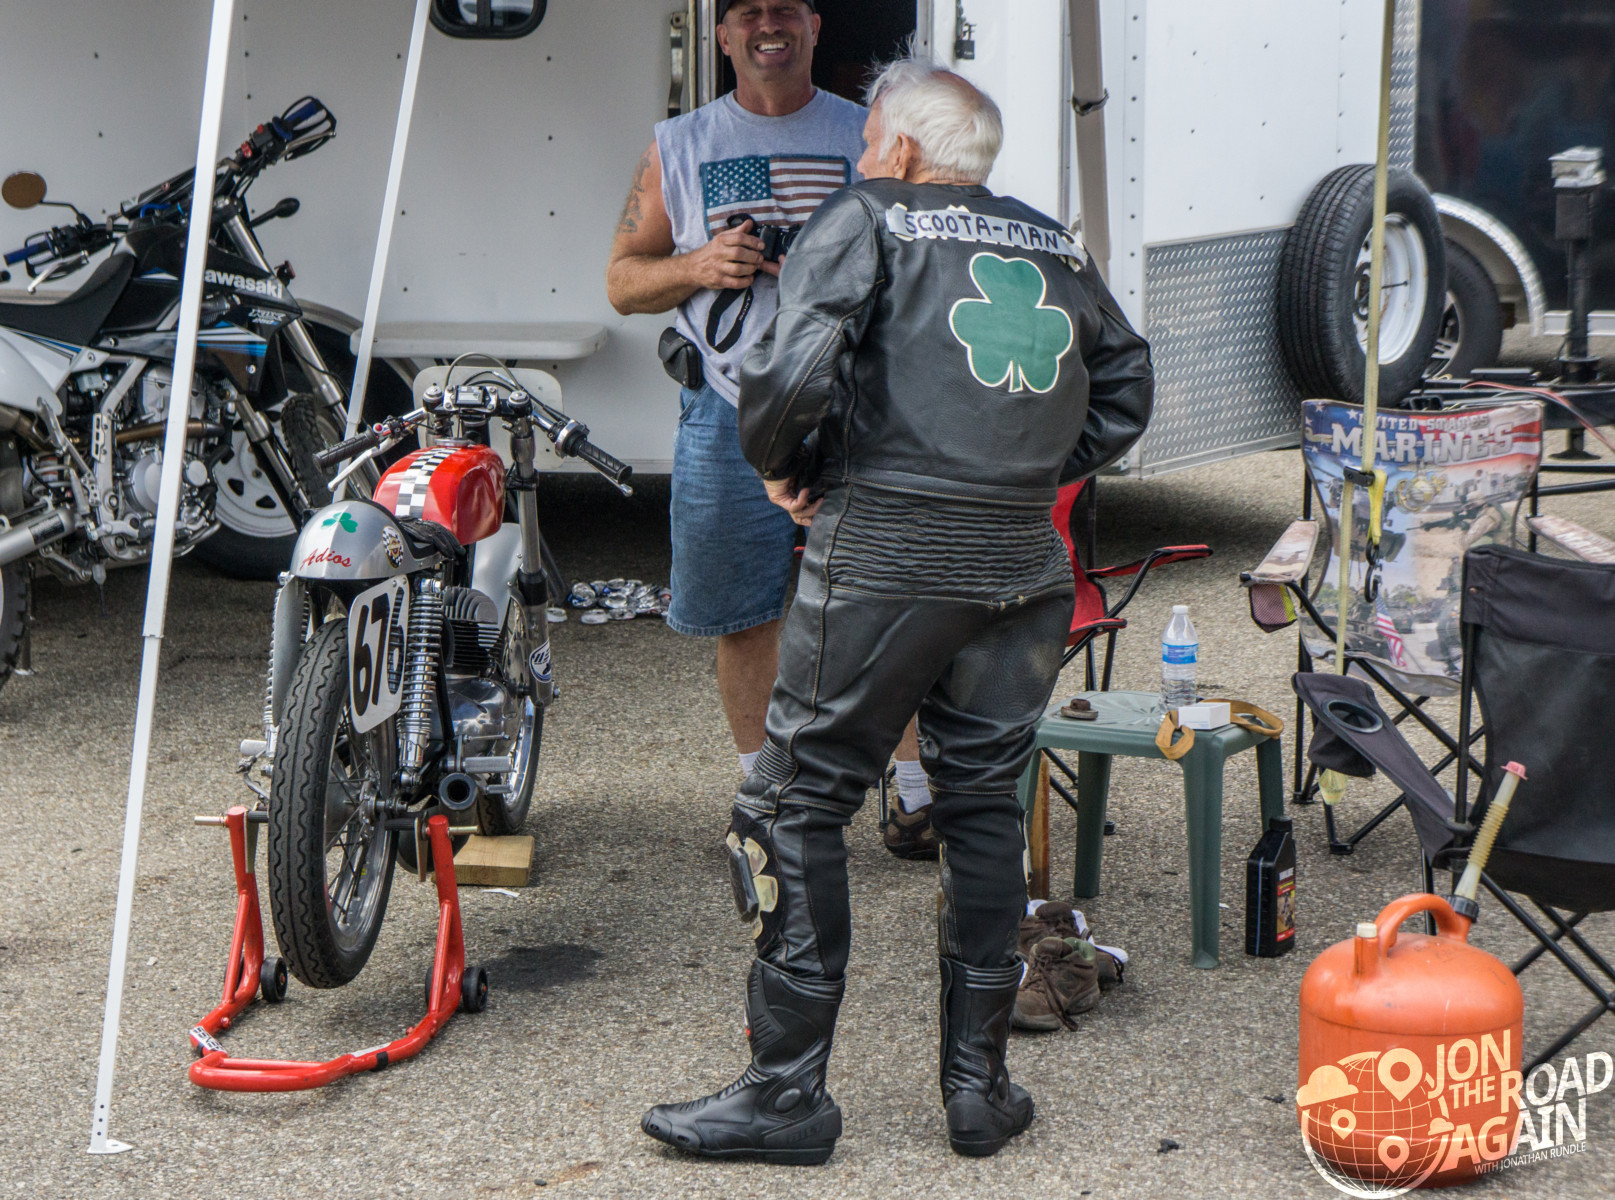 Scoota-man elderly motorcycle racer at AMA Vintage Motorcycle Days